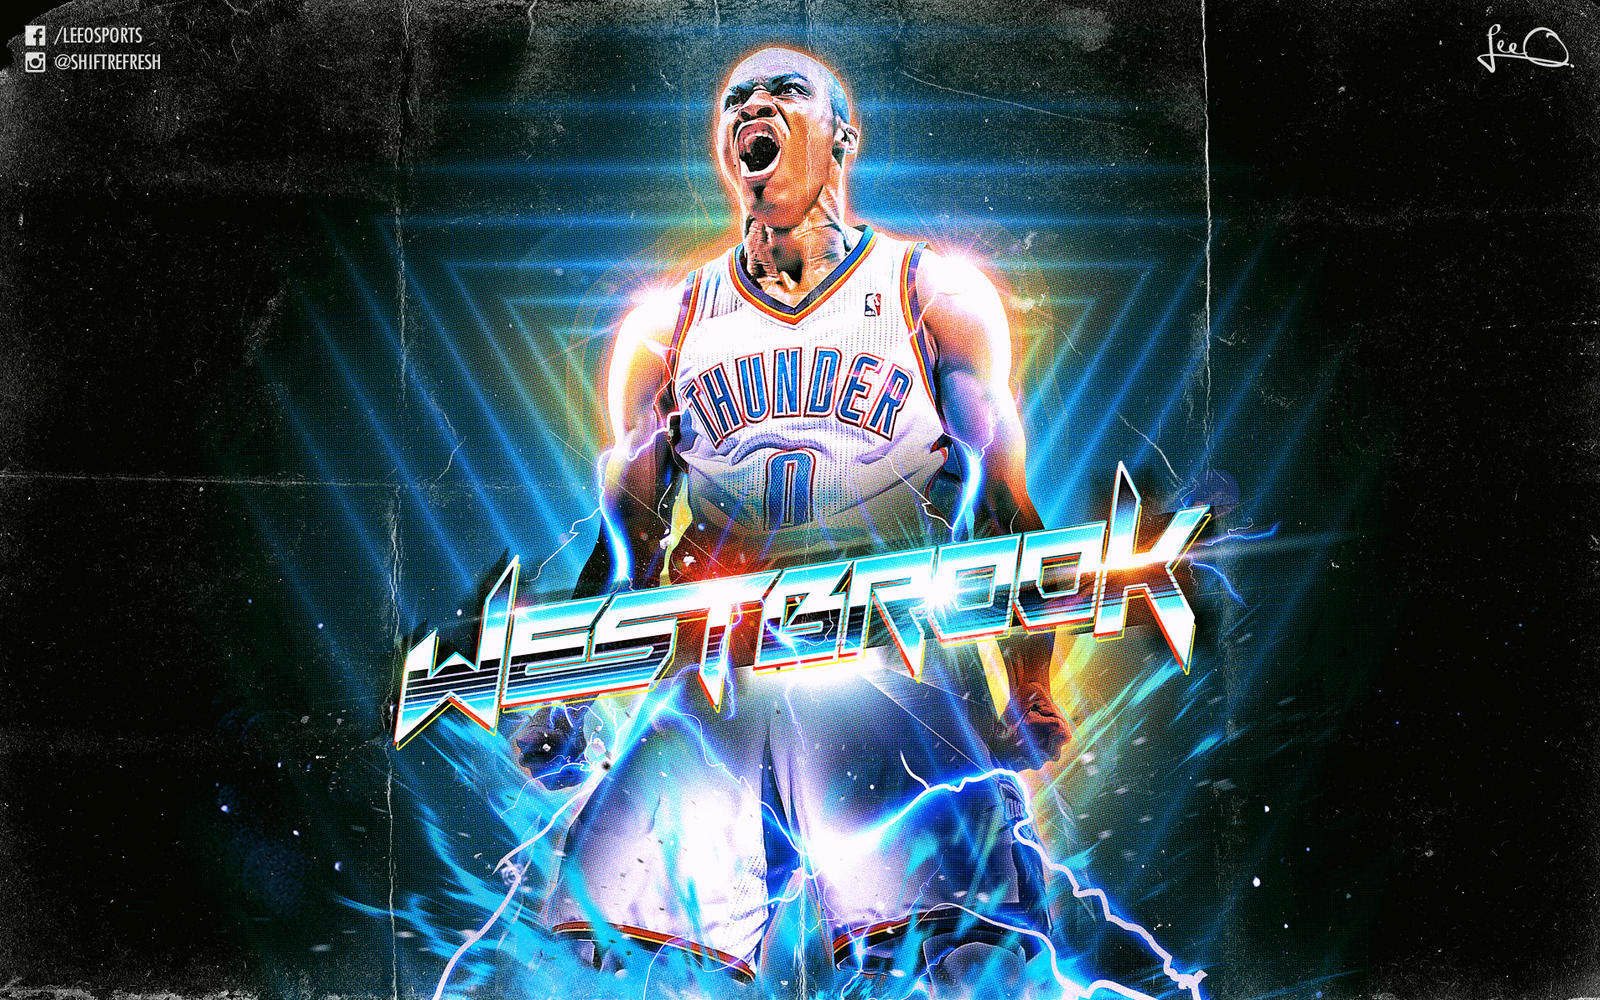 Russell westbrook retro nba wallpaper by skythlee on - Cool nba background ...